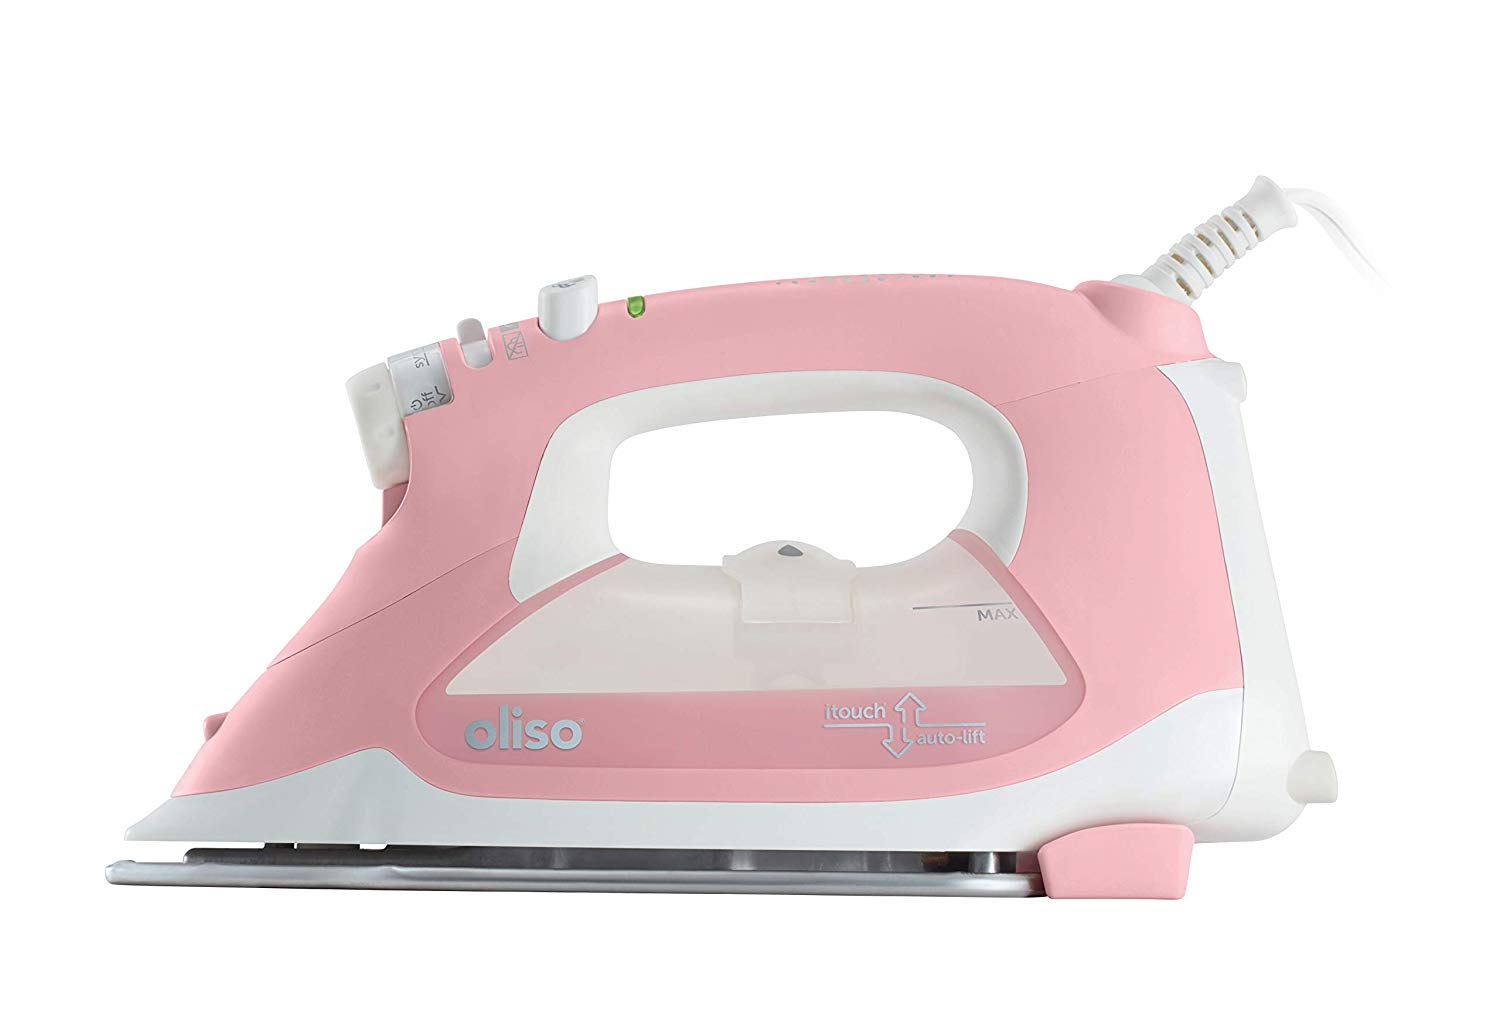 Oliso TG1600 Smart Iron Reviews 2020